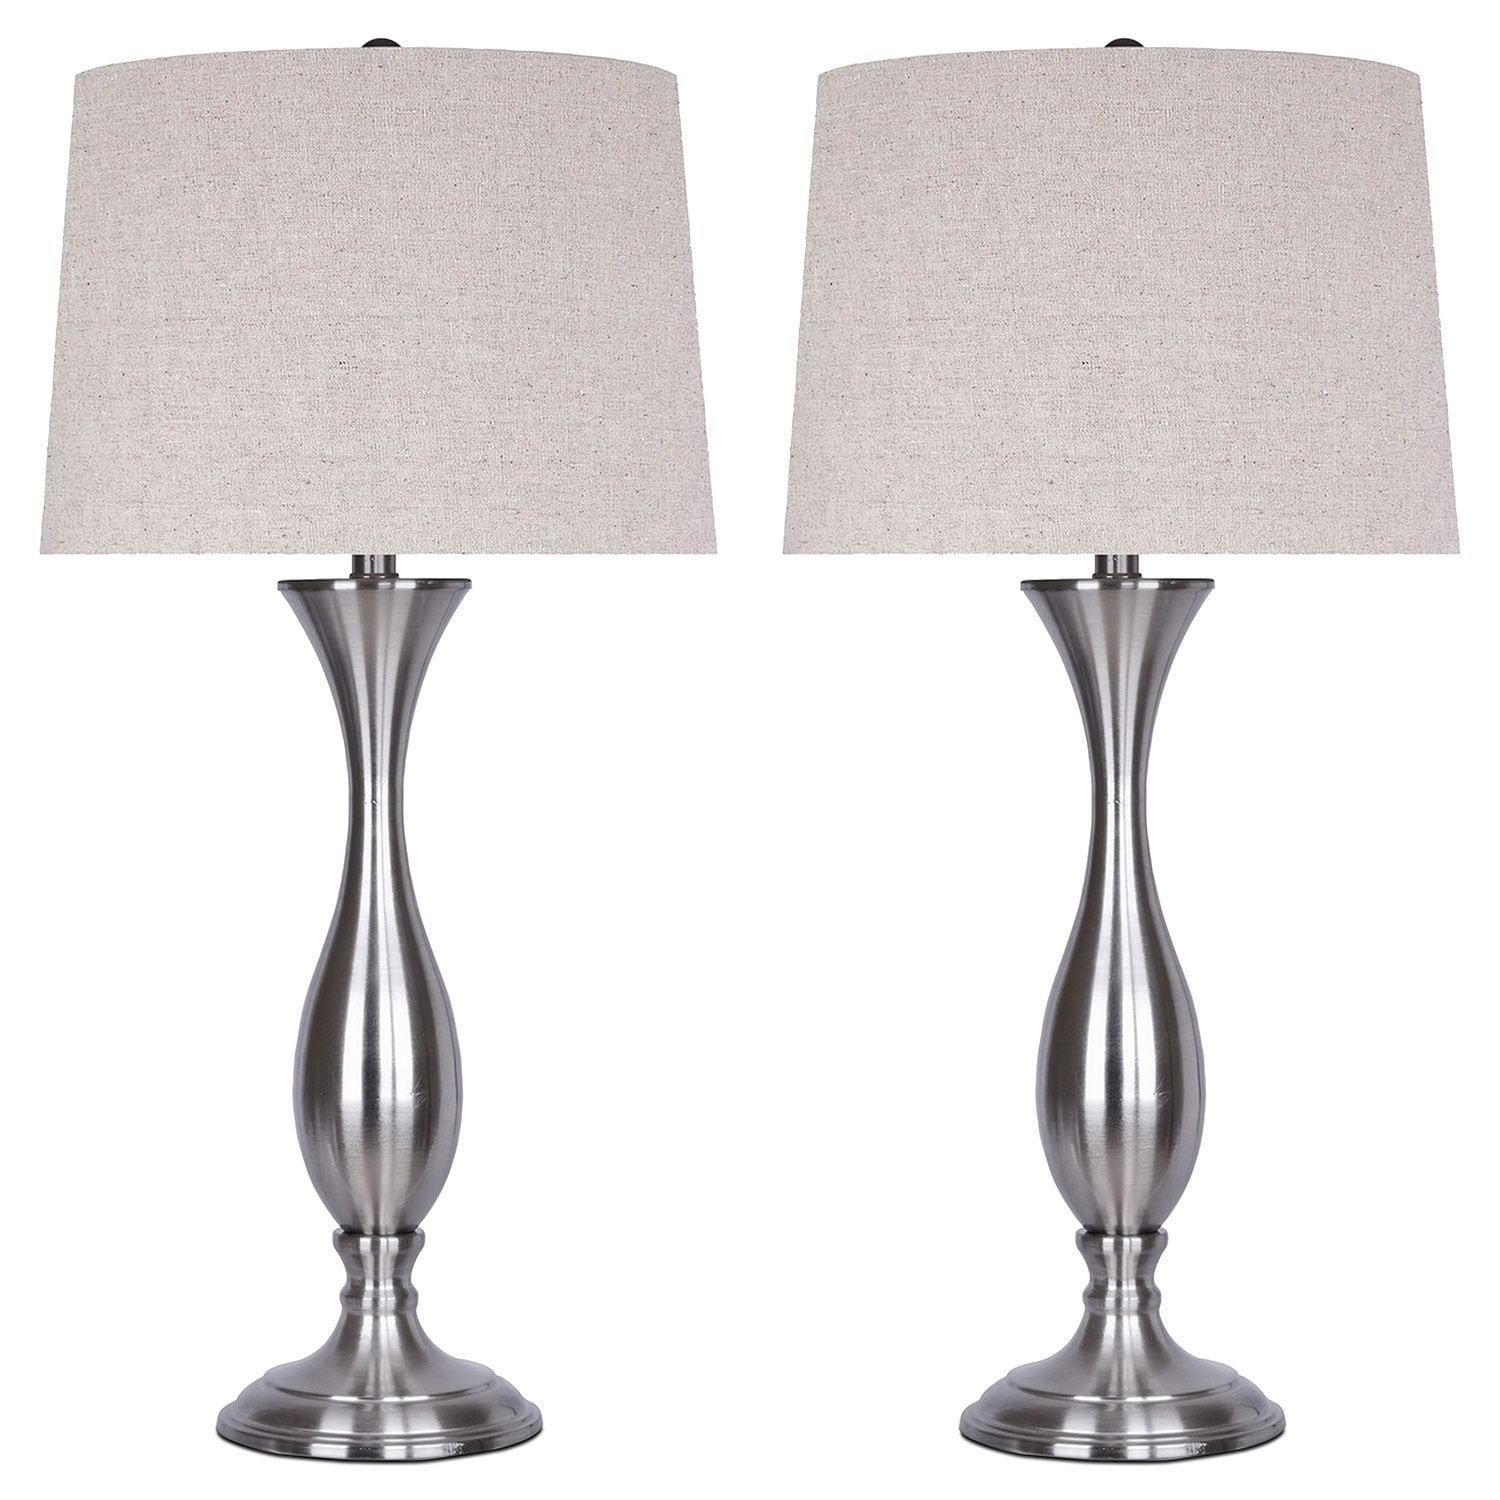 Brushed Nickel 2-Piece Table Lamp Set